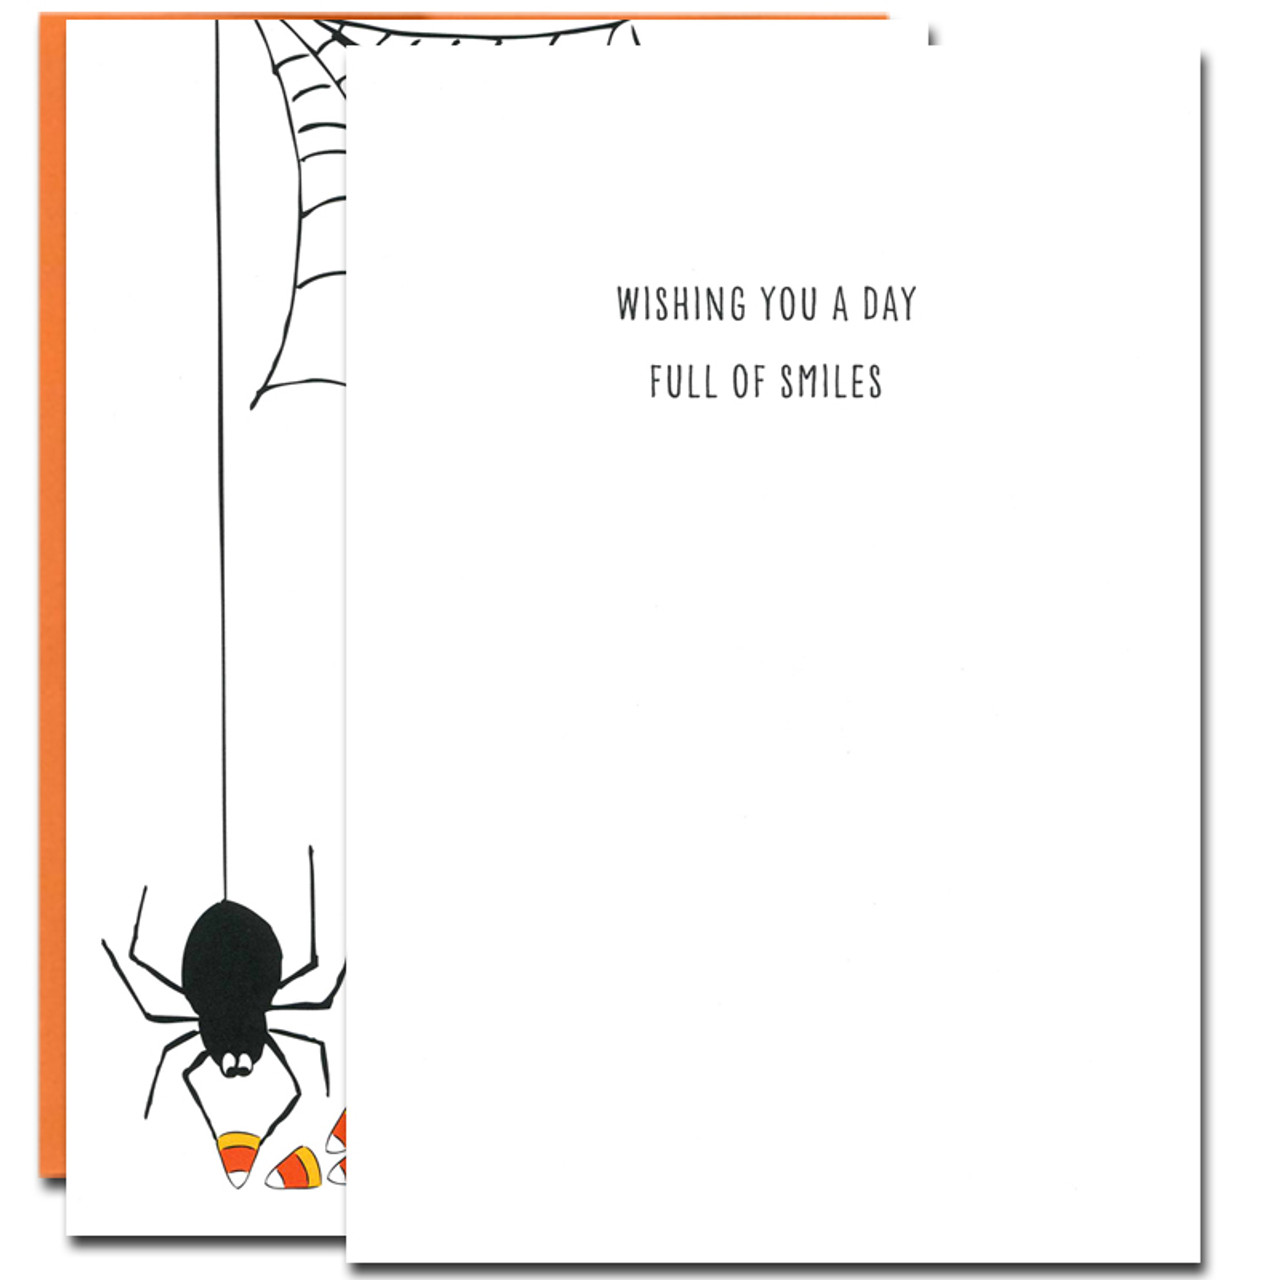 Inside of Candy Thief Halloween Card. Greeting reads, Wishing you a day full of smiles